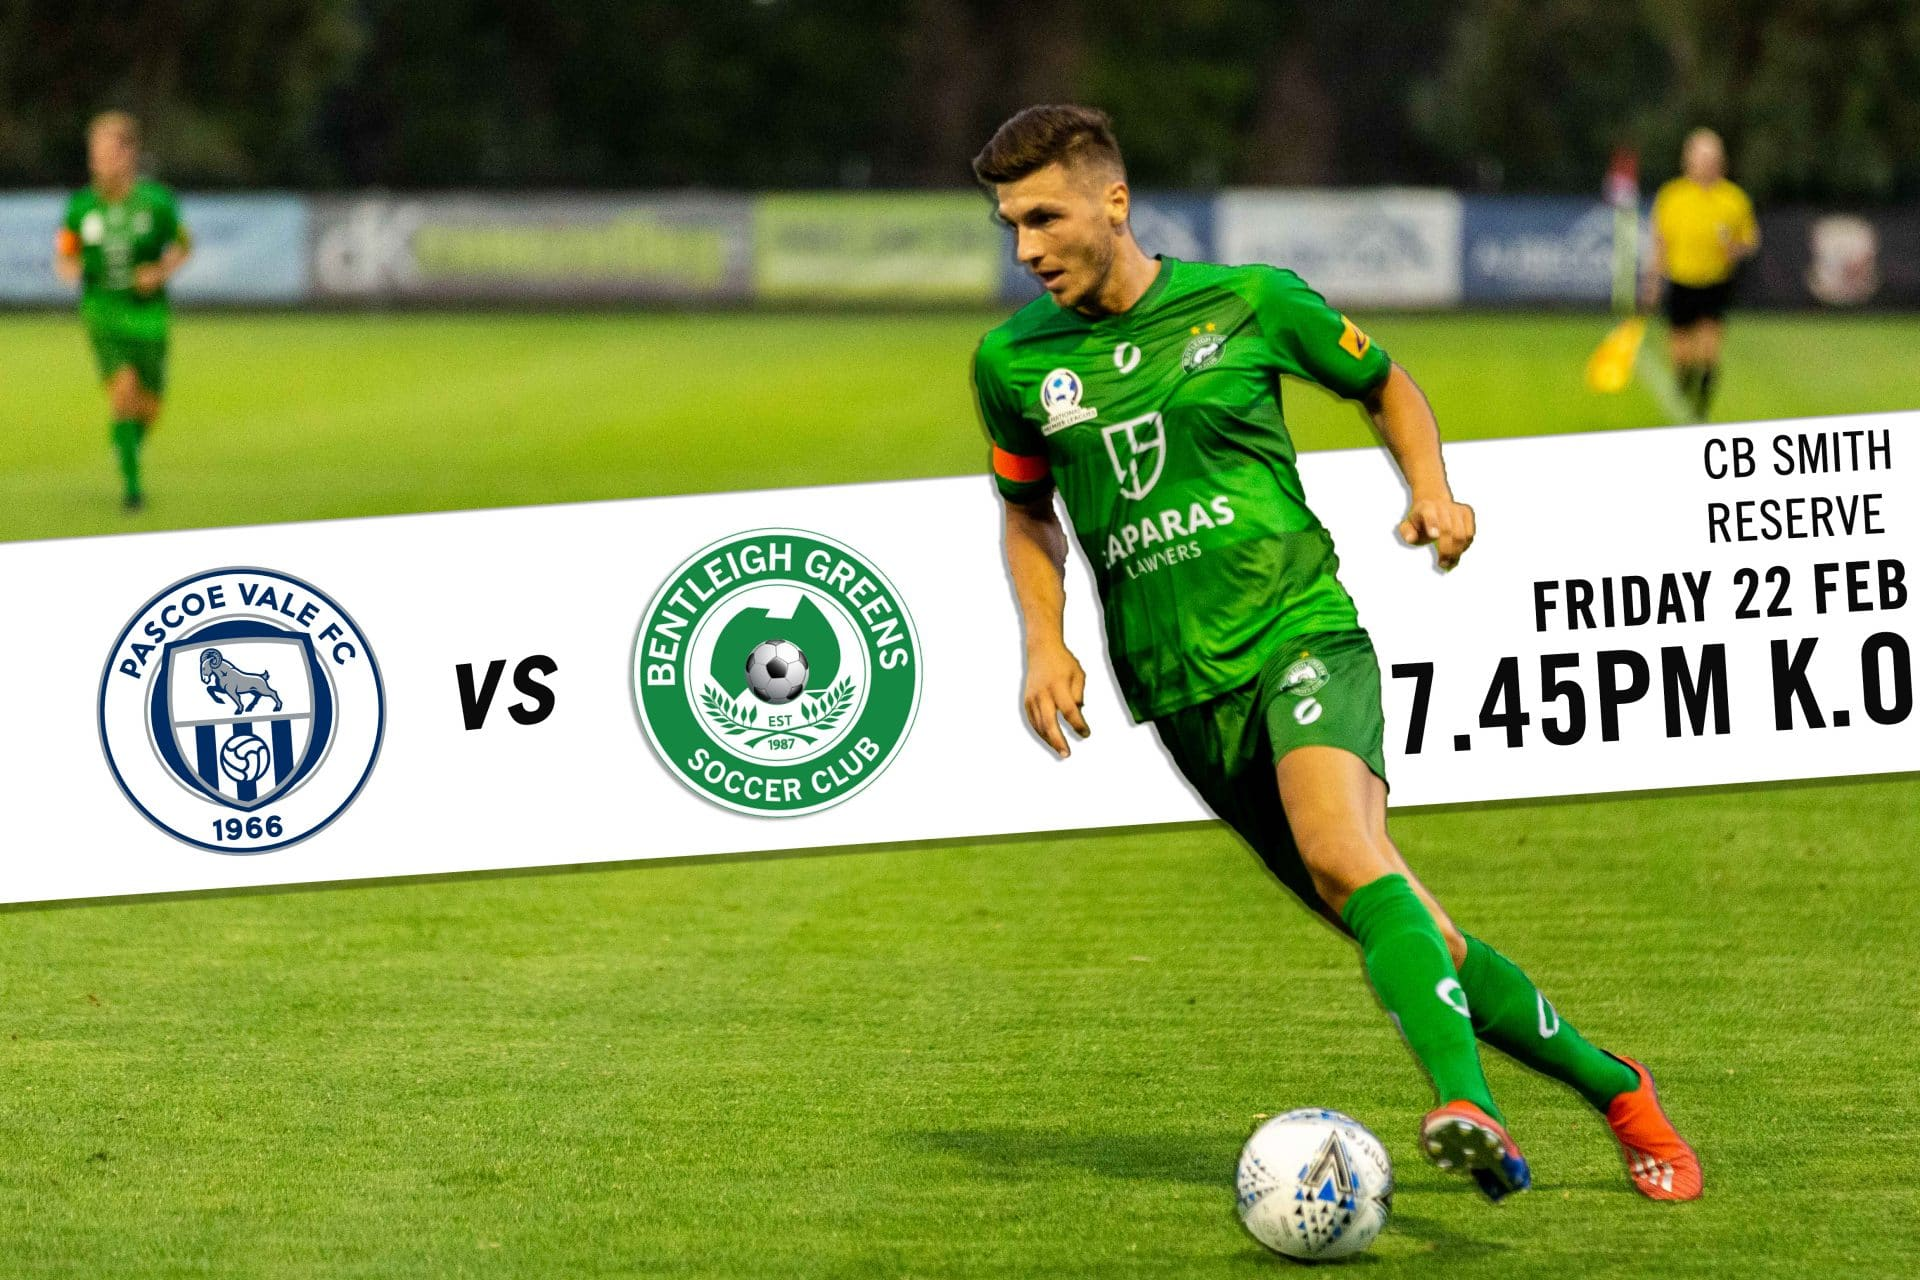 Match Preview : Pascoe Vale v Bentleigh Greens